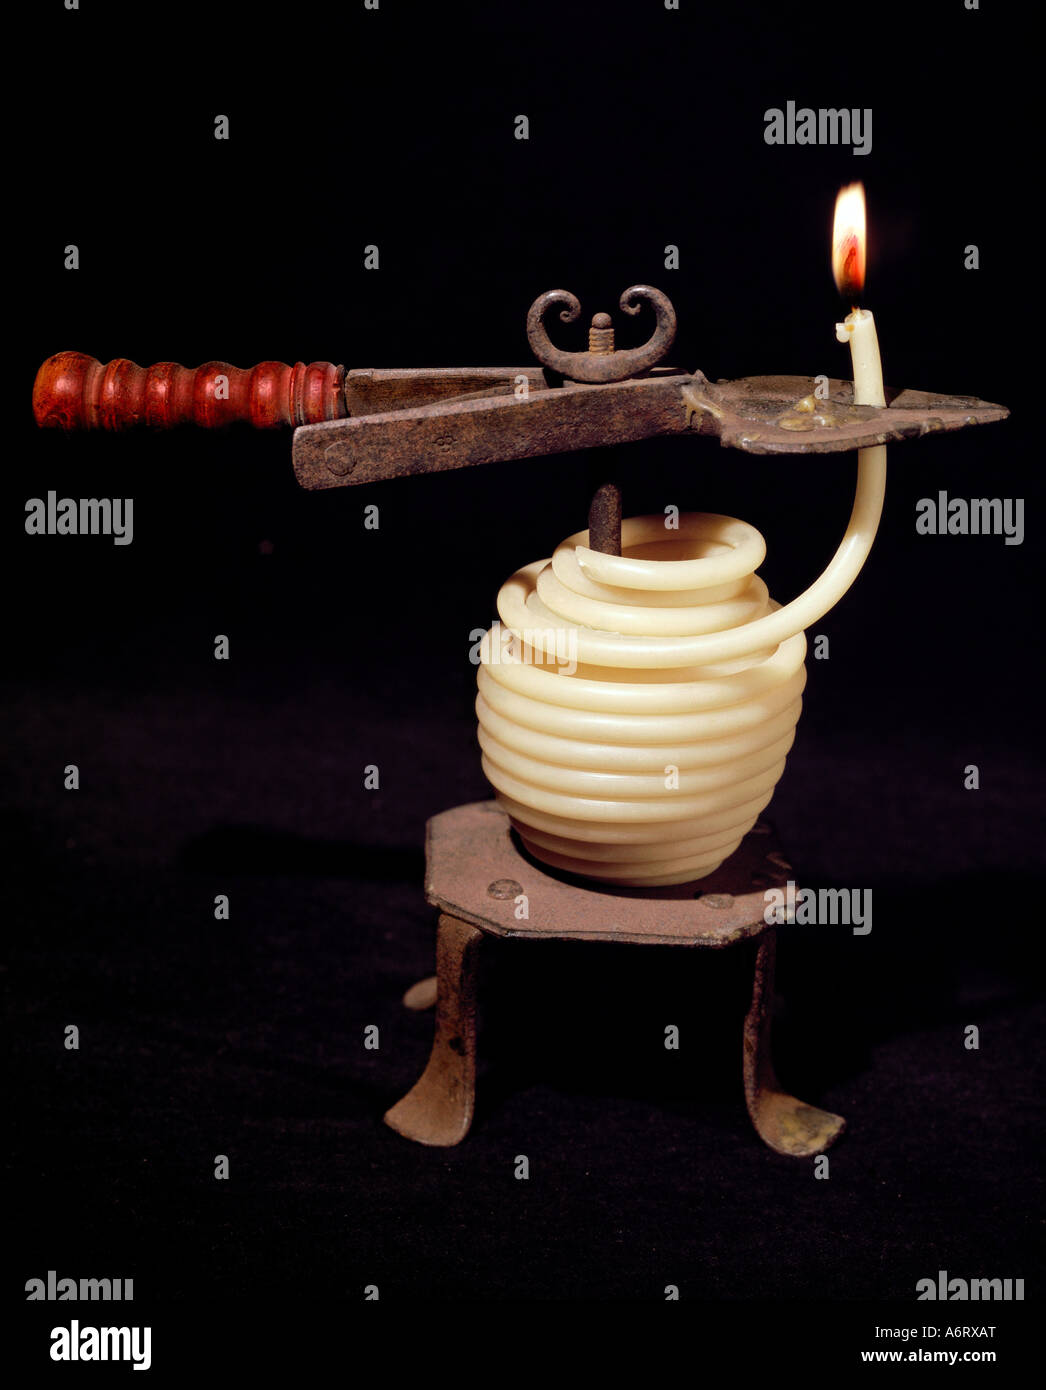 energy, lamps and light, wax string fastener, Basel, circa 1900, Additional-Rights-Clearances-NA - Stock Image